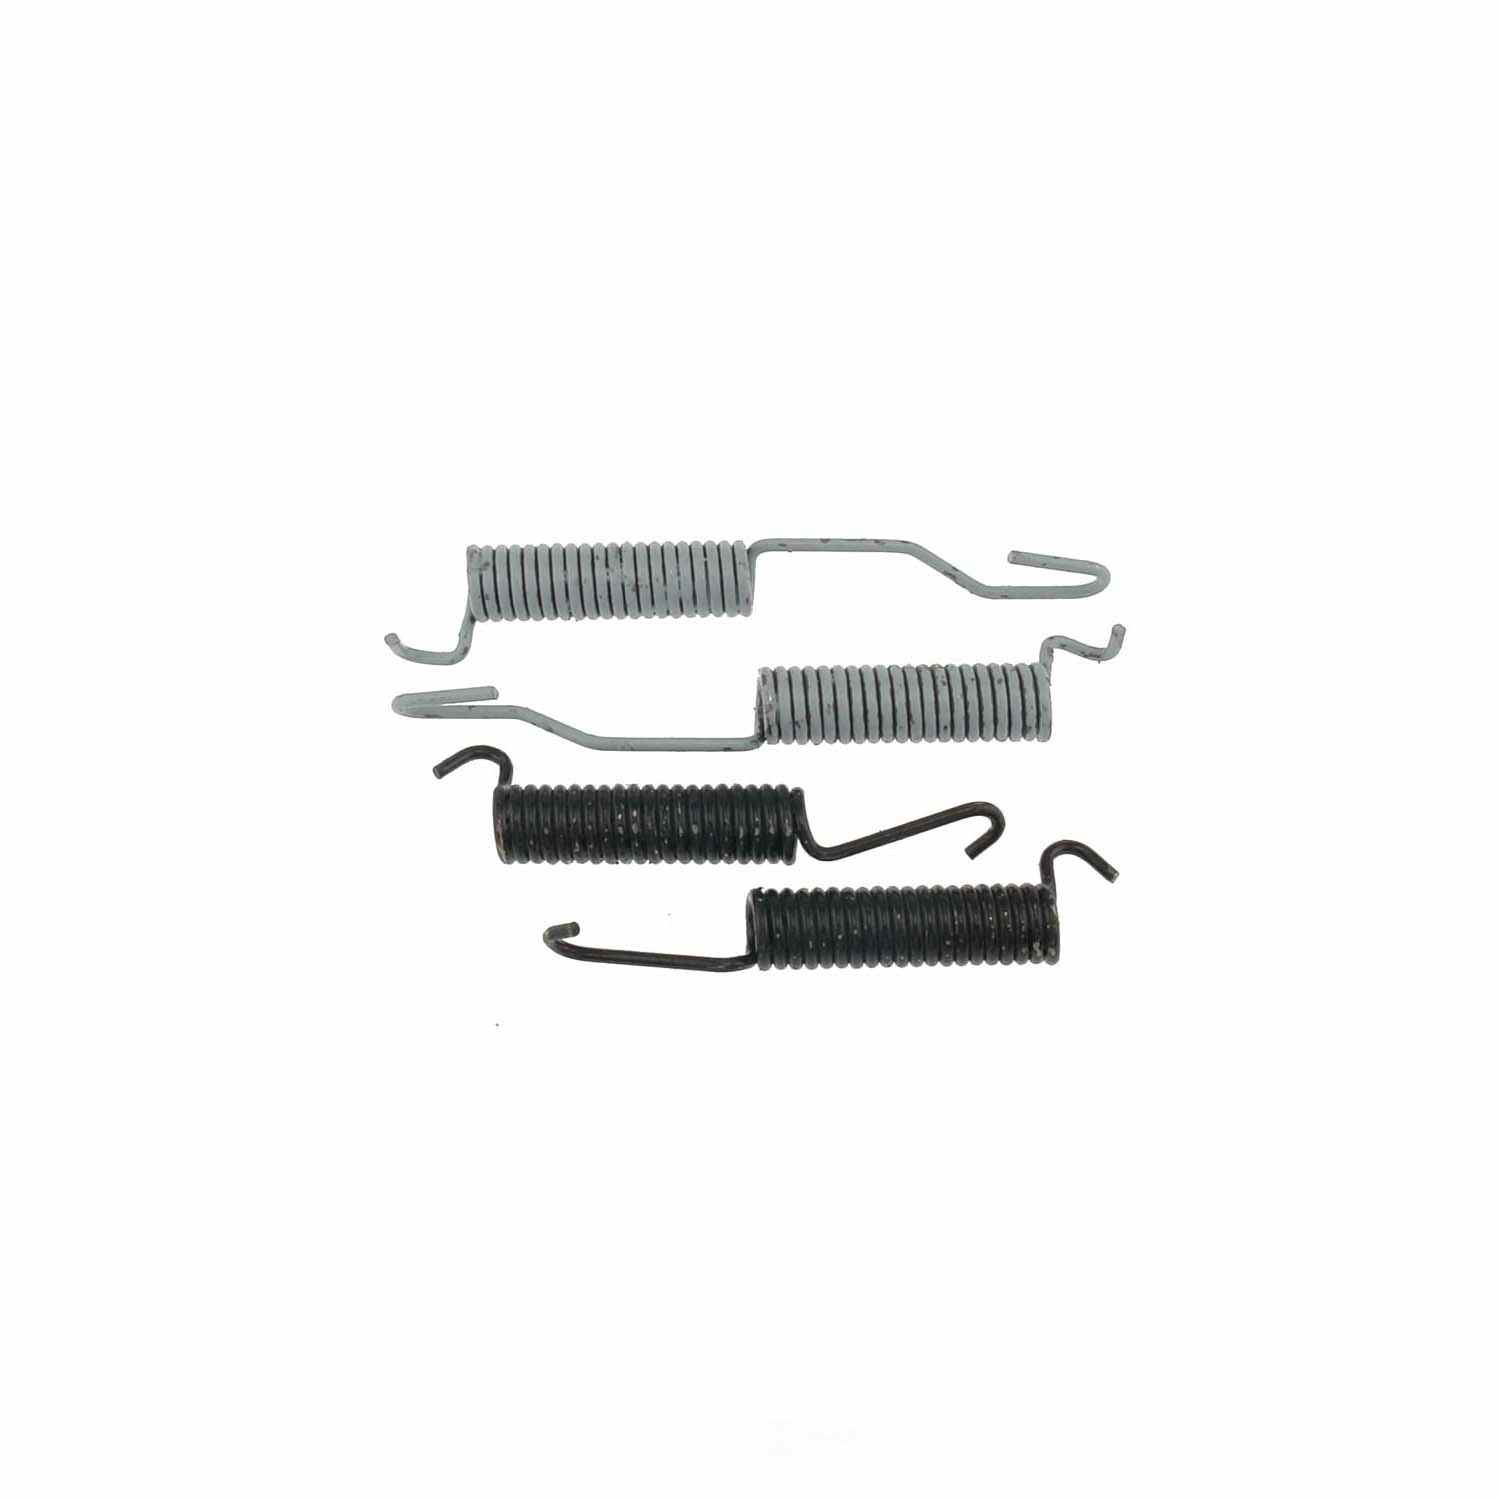 CARLSON QUALITY BRAKE PARTS - Drum Brake Shoe Return Spring Kit - CRL H369